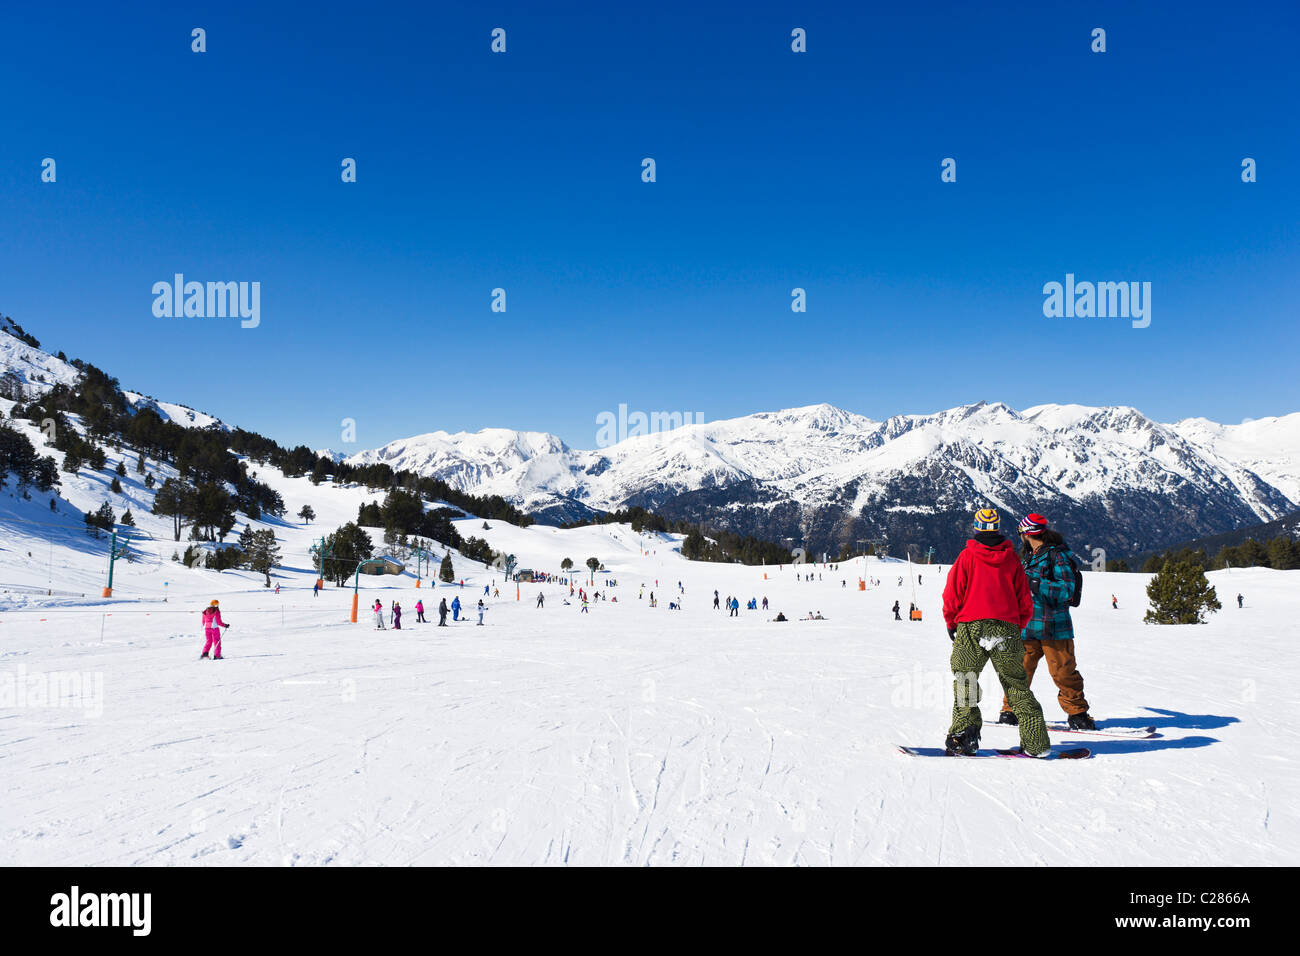 Snowboarders on the nursery slopes in the Espiolets ski area, Soldeu, Grandvalira Region, Andorra Stock Photo